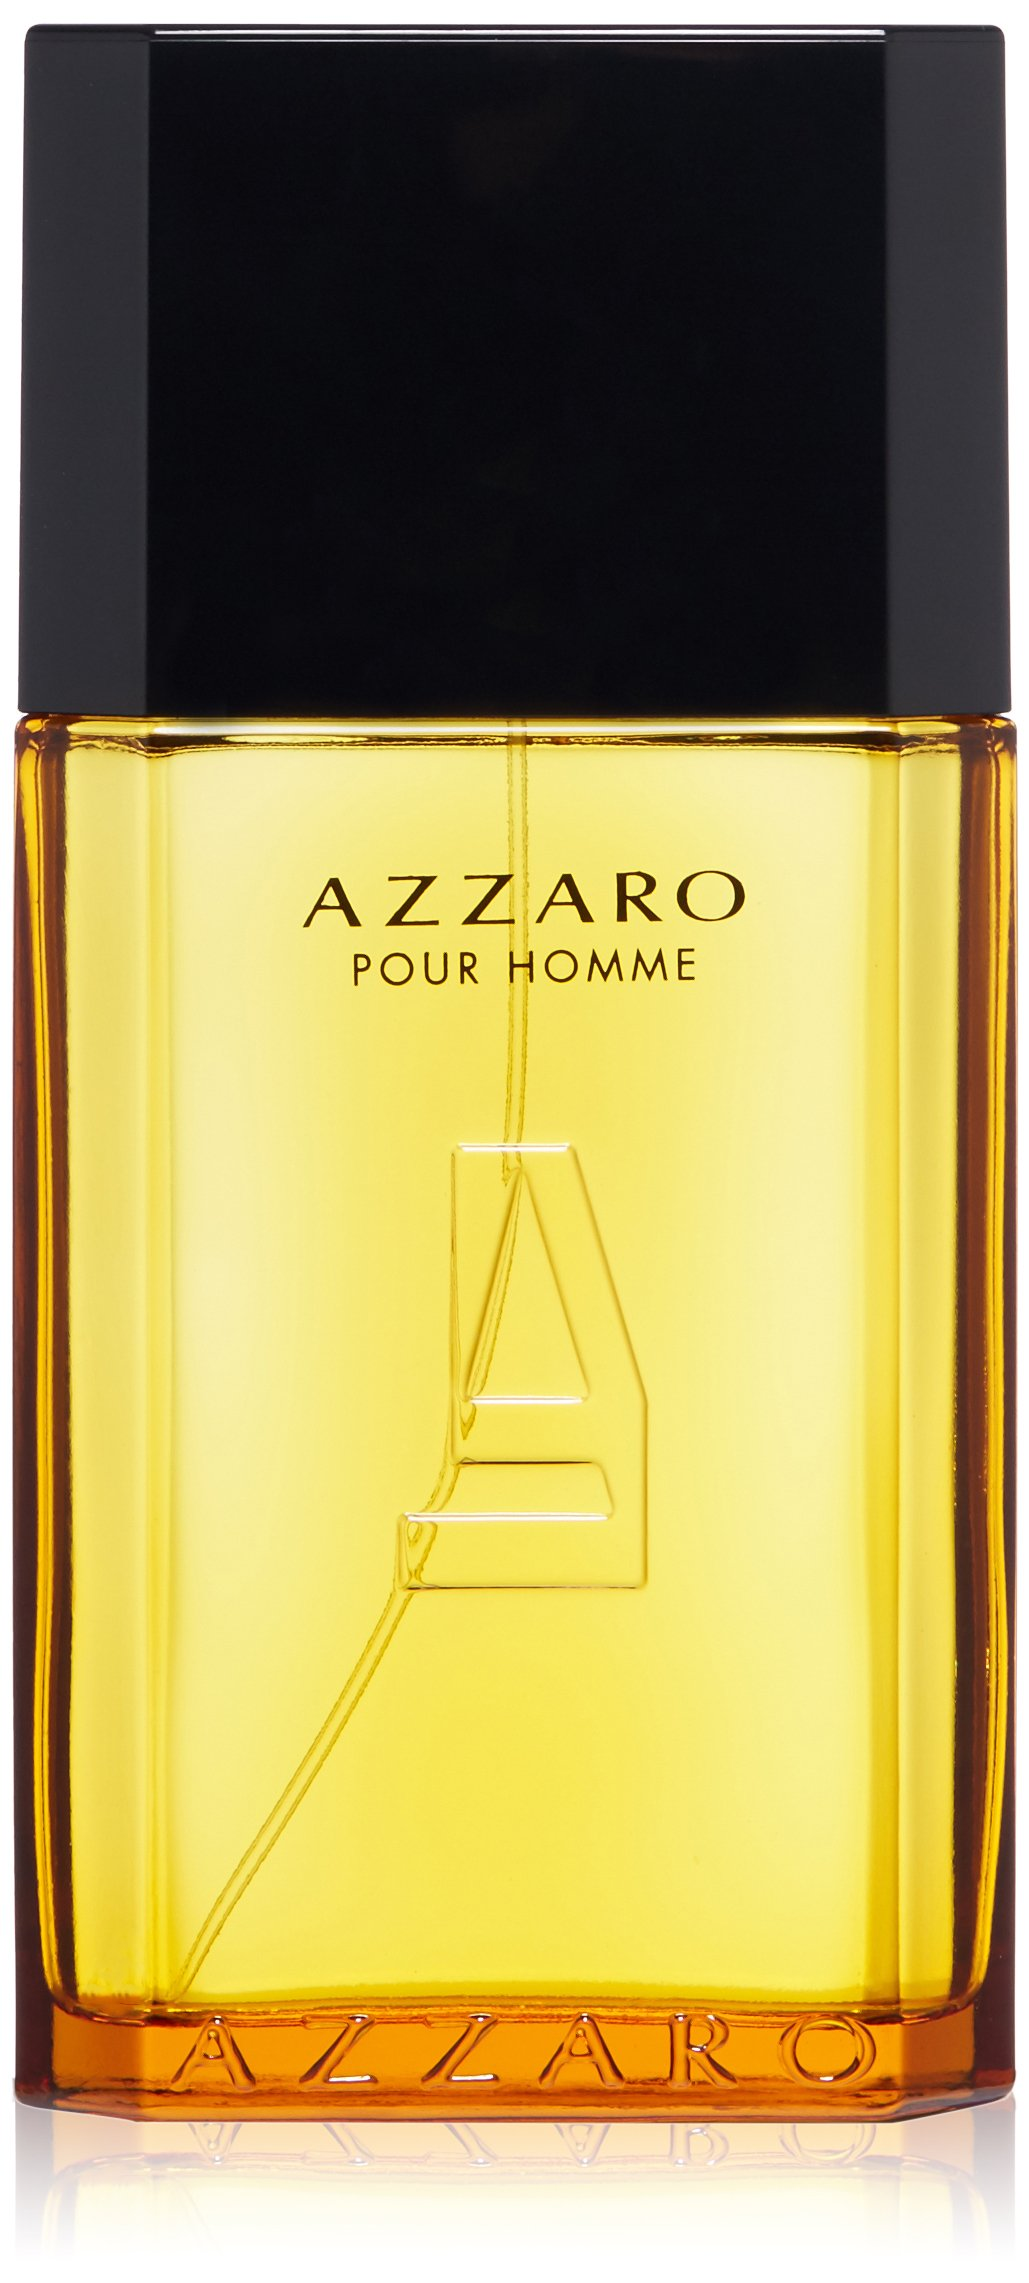 33239553ecf Amazon.com  Azzaro Pour Homme Eau de Toilette Spray